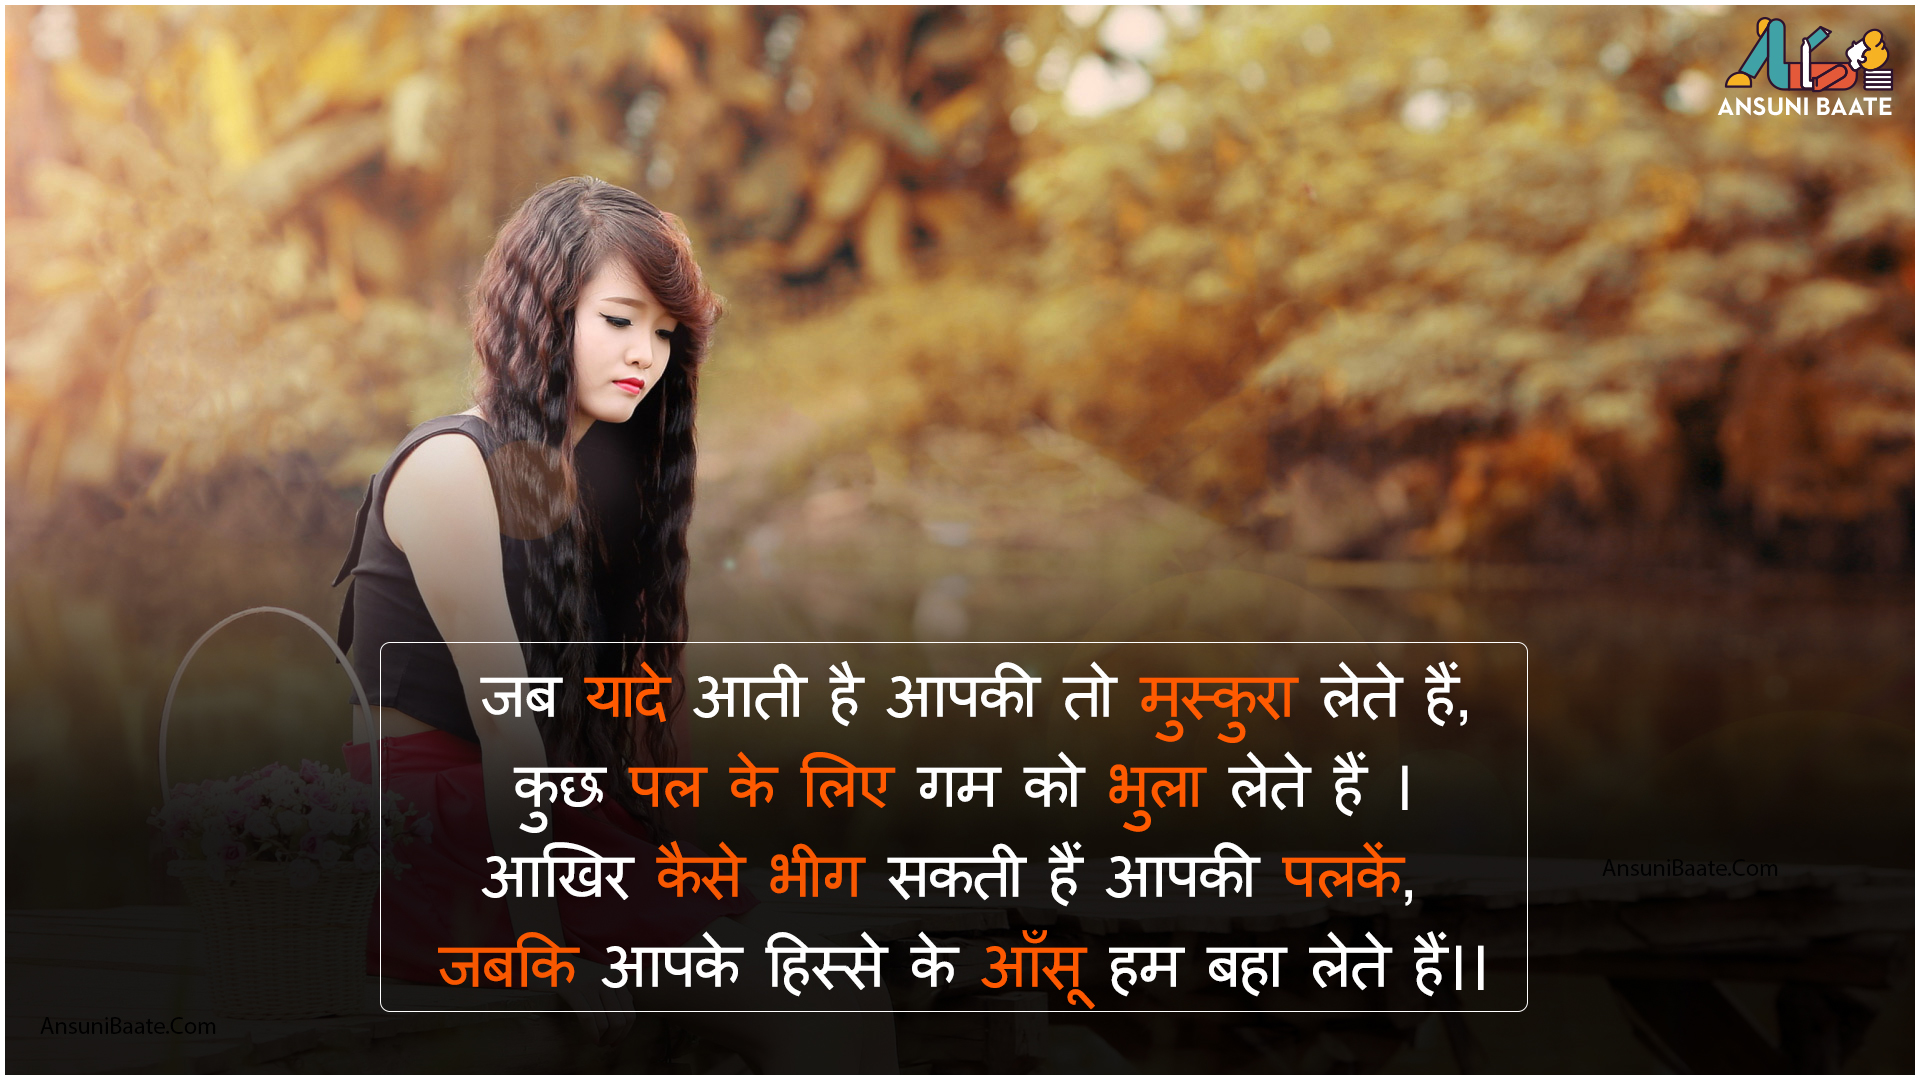 याद शायरी इन हिंदी - Yaad Shayari with Images Wallpaper In Hindi urdu,dard dost,aansu,bewafa,intezaar,miss you zindagi, mohabat, friend,love,romantic, trulove, whatsapp, facebook ,sms,sad,waqt,status,attitude,happy,care,diary,dl,hindi, girlfriend,sister,school,faimly,pyar,yaad,breakup